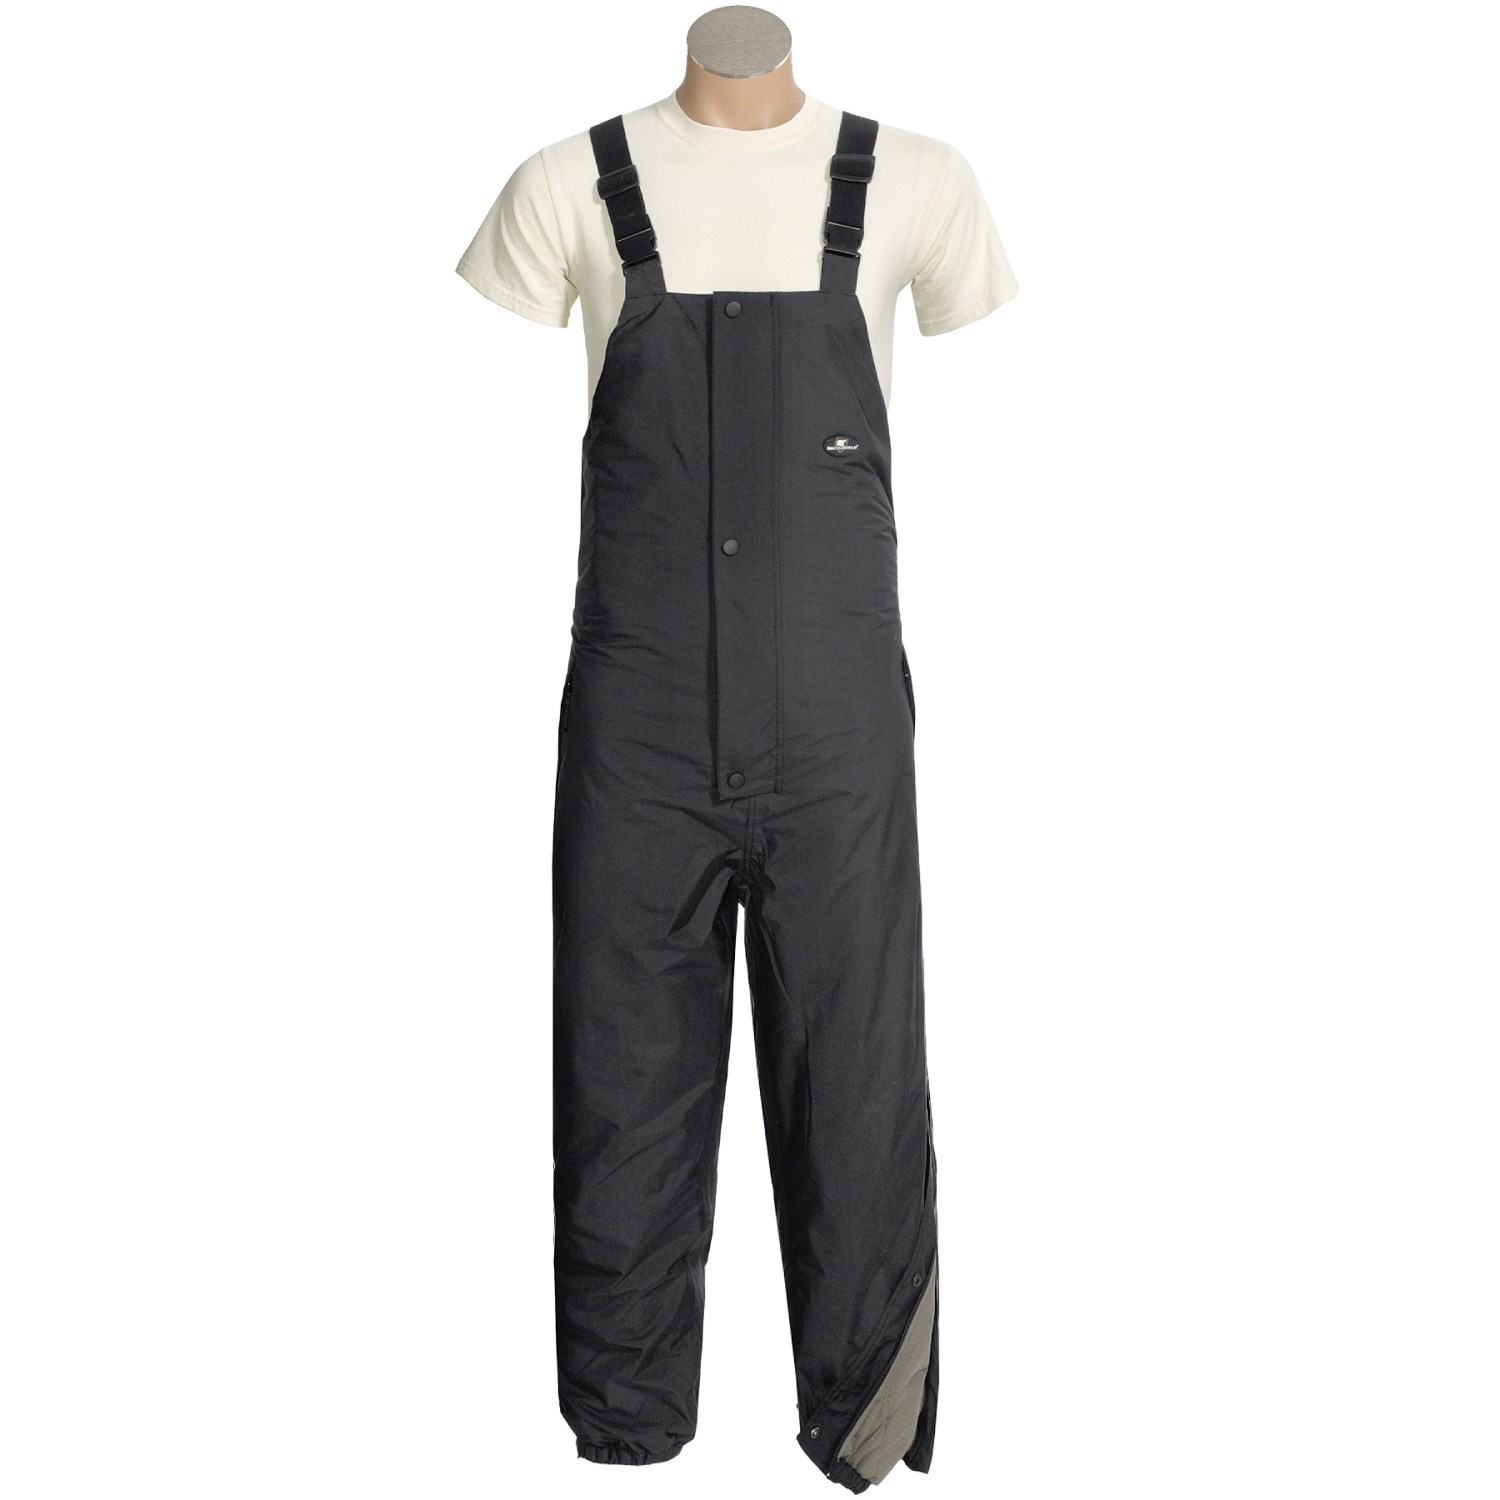 Arctic shield s1 fishing bib overalls for men 2824a for Waterproof fishing bibs